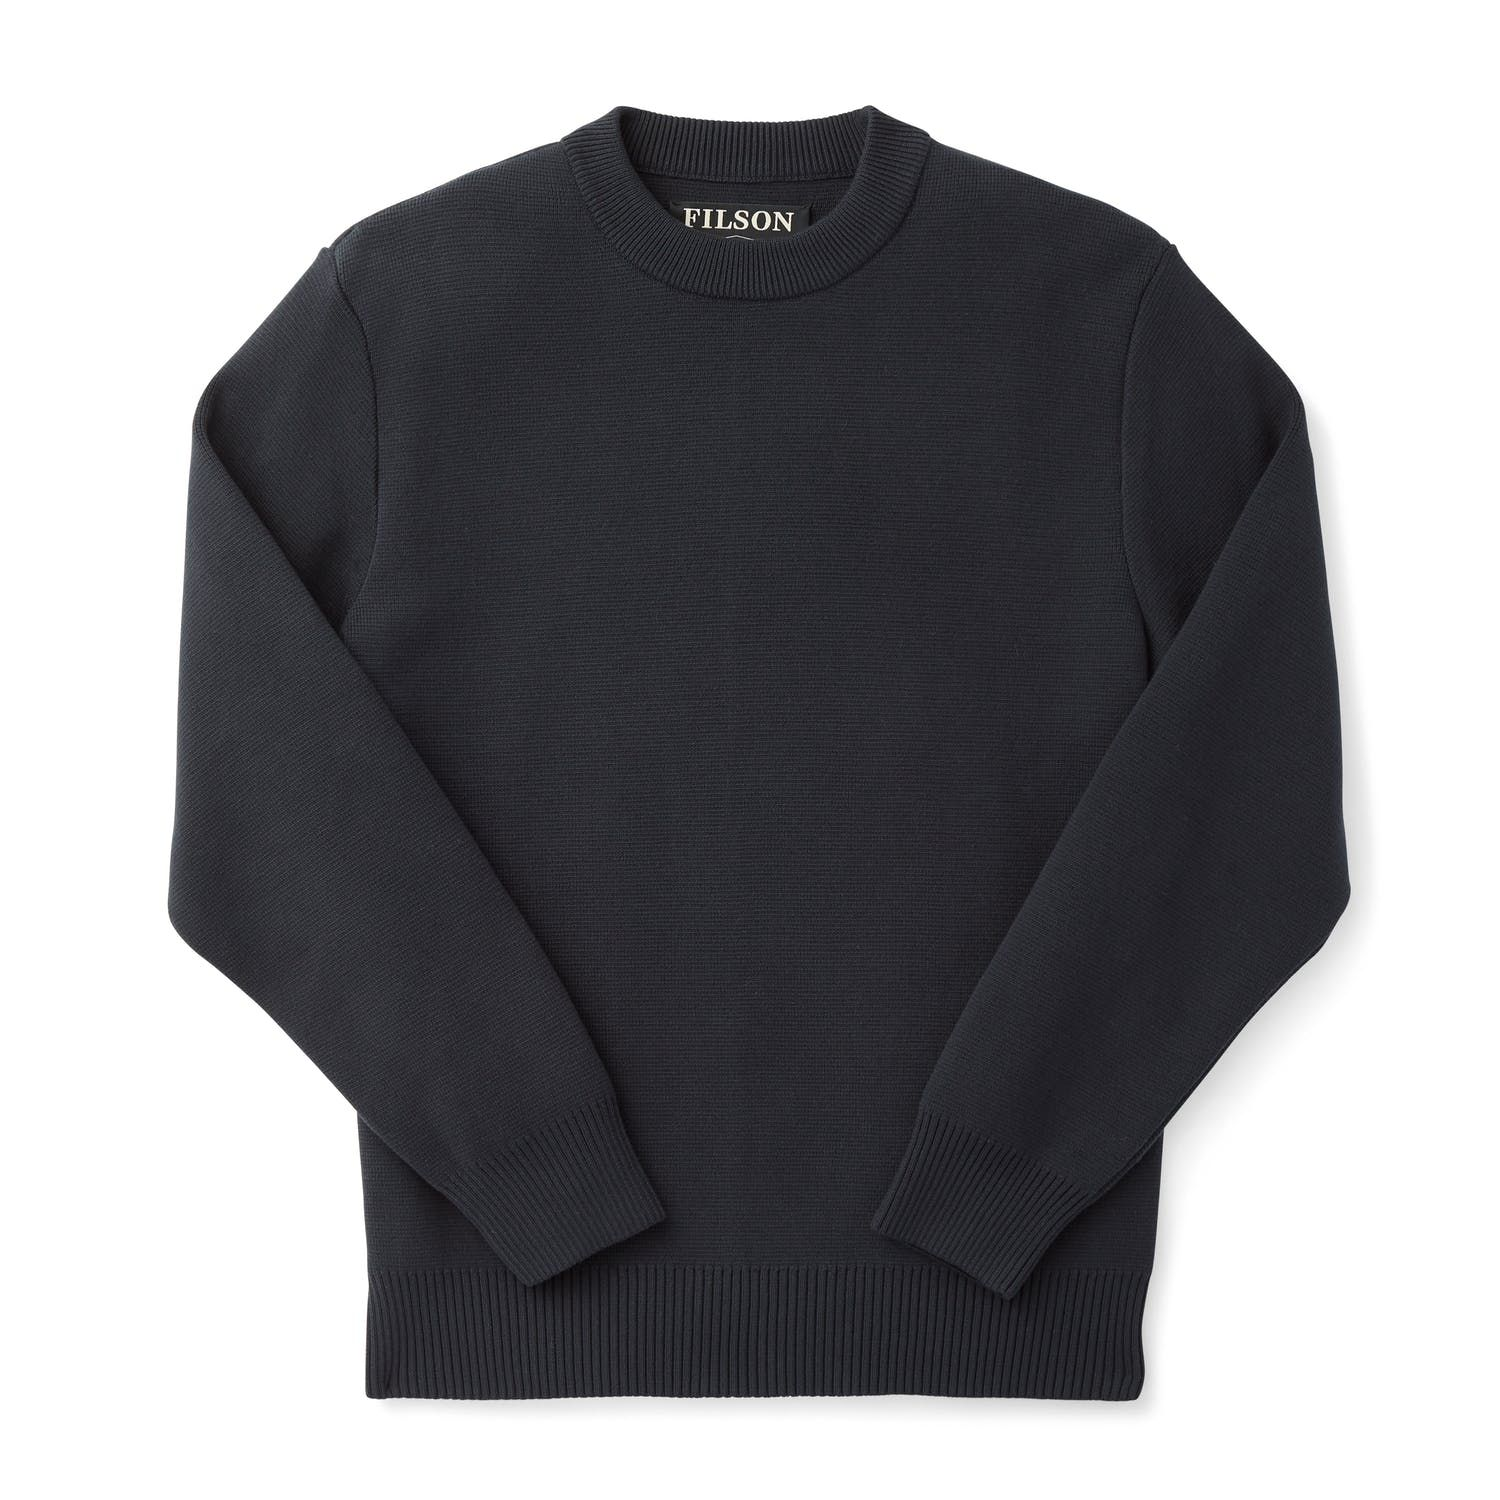 Cotton Crewneck Guide Sweater Sweater Guide Sweaters Crew Neck [ 1500 x 1500 Pixel ]